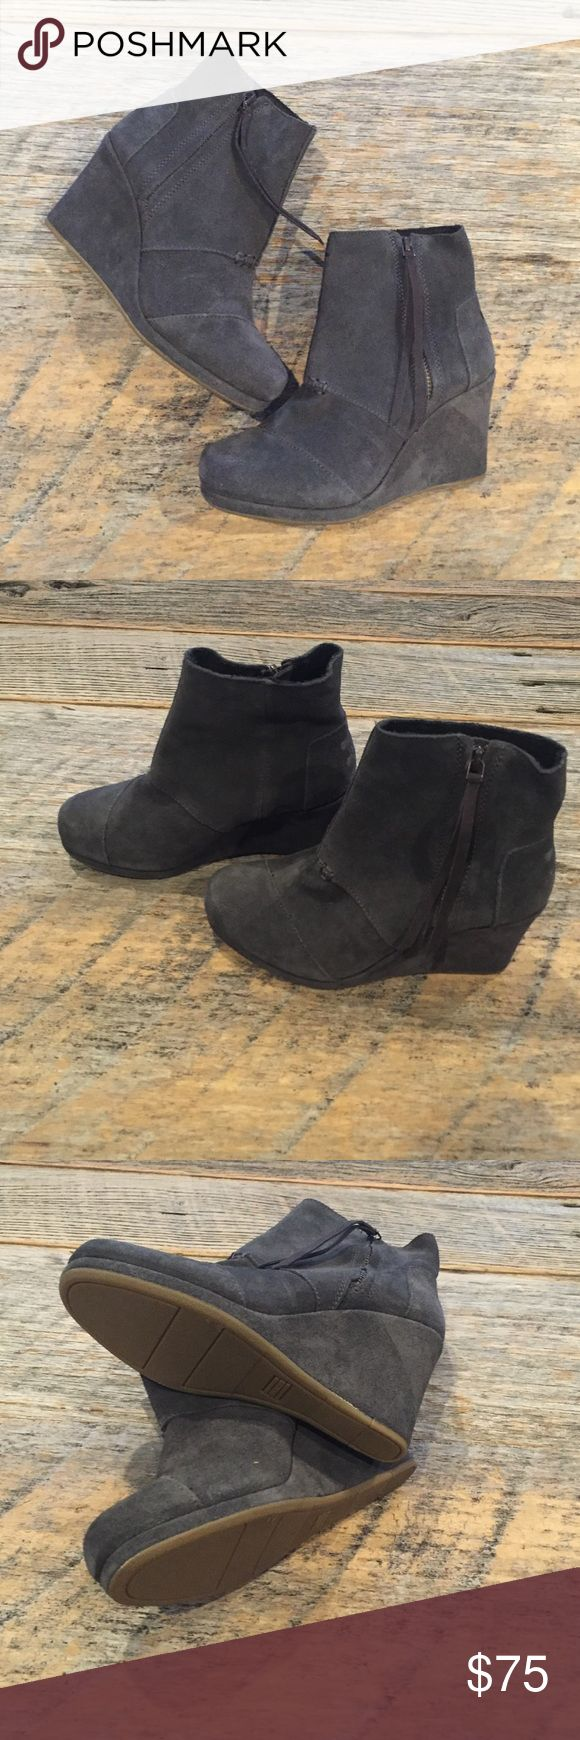 Toms Desert Wedge Gray Zip Booties EUC, like new. No box or trades. TOMS Shoes Ankle Boots & Booties